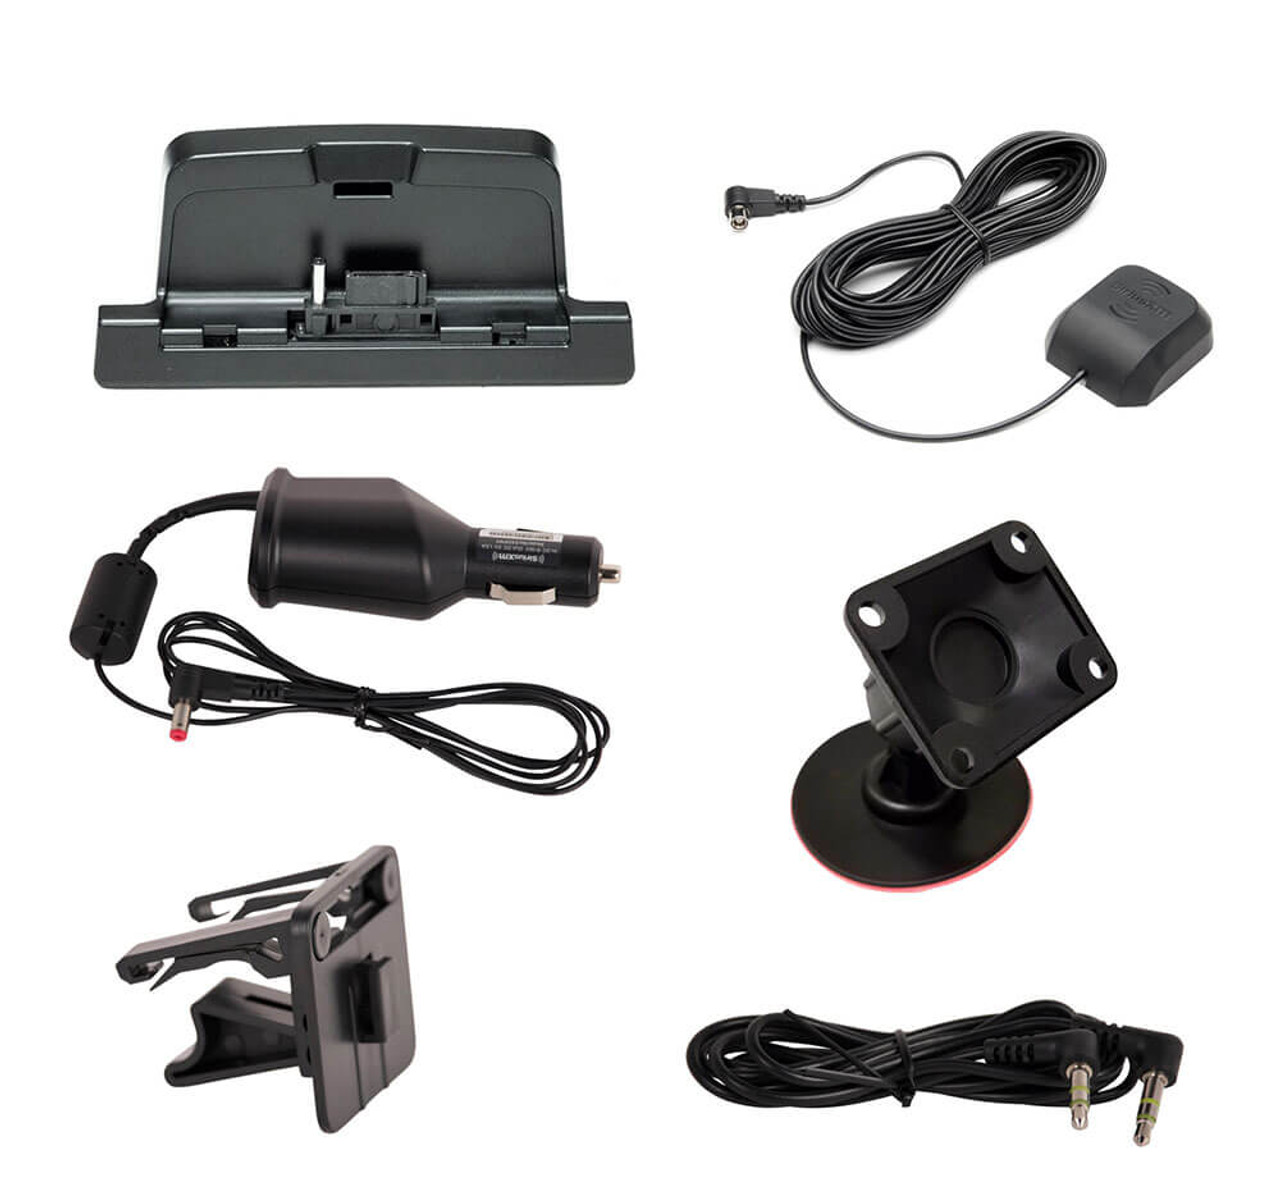 Engine Mounts moreover 141049329396 in addition 351943219587 together with Refurbished Open Xm Xmp3i Standalone Receiver additionally 231534870408. on xm satellite radio home antenna parts